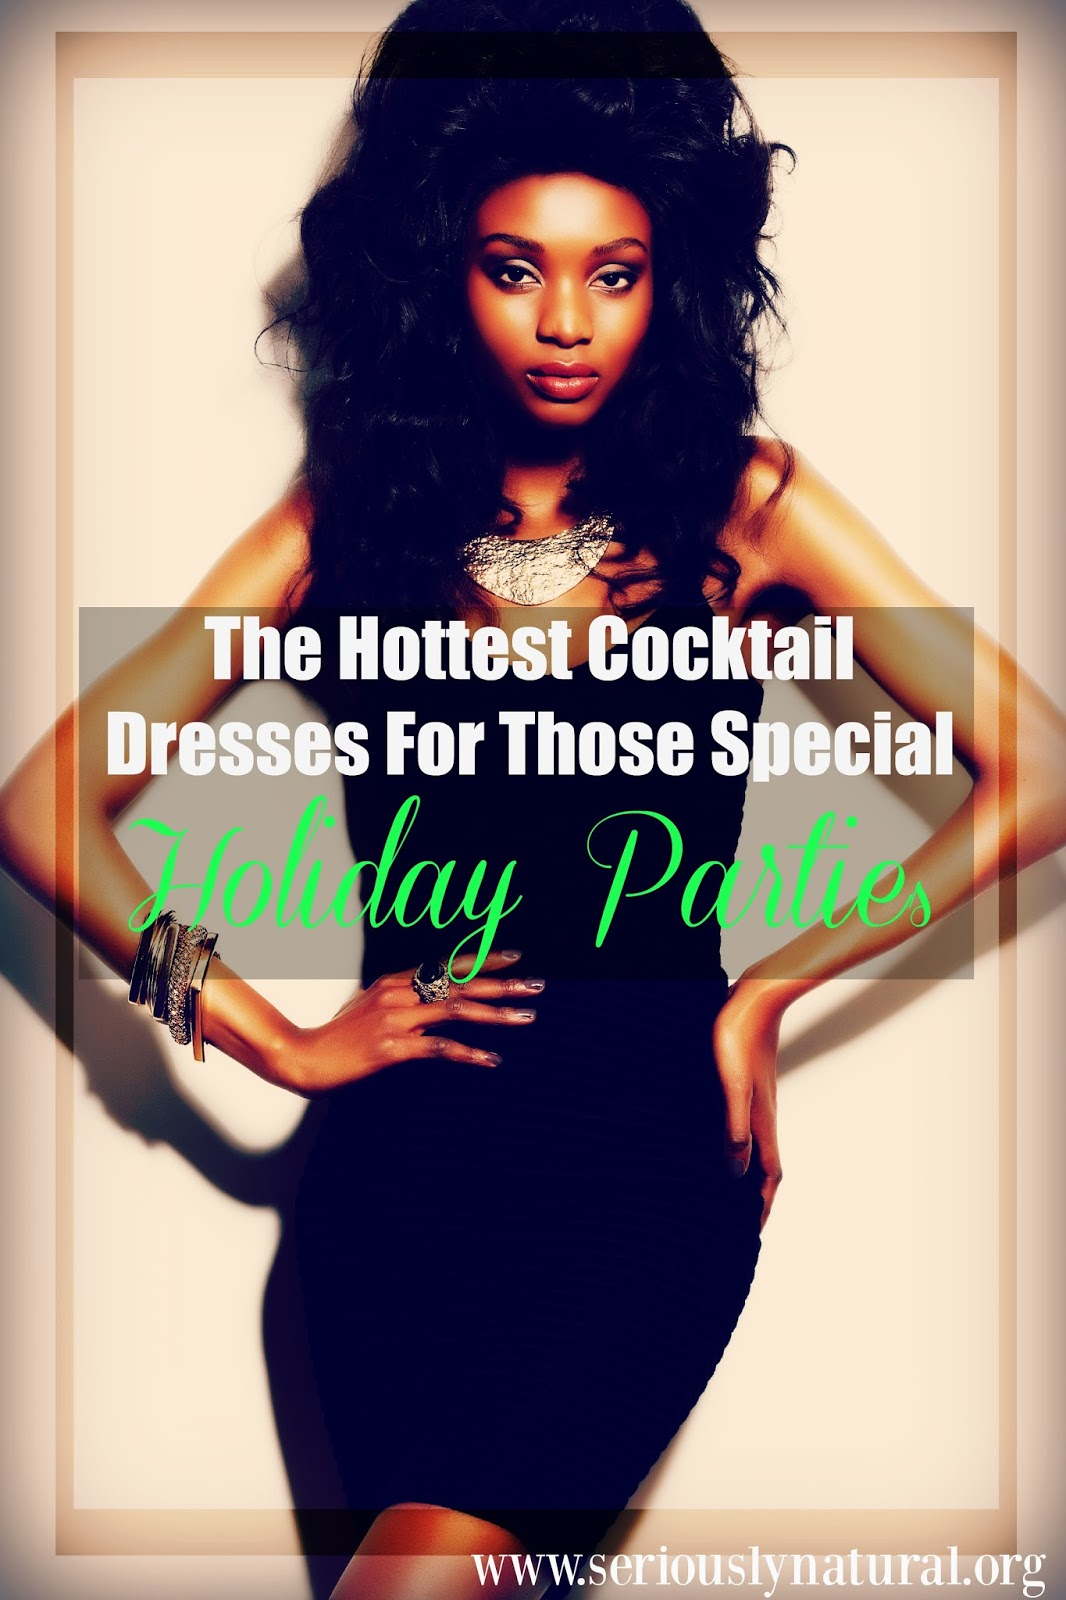 The Hottest Cocktail Dresses For Those Special Holiday Parties